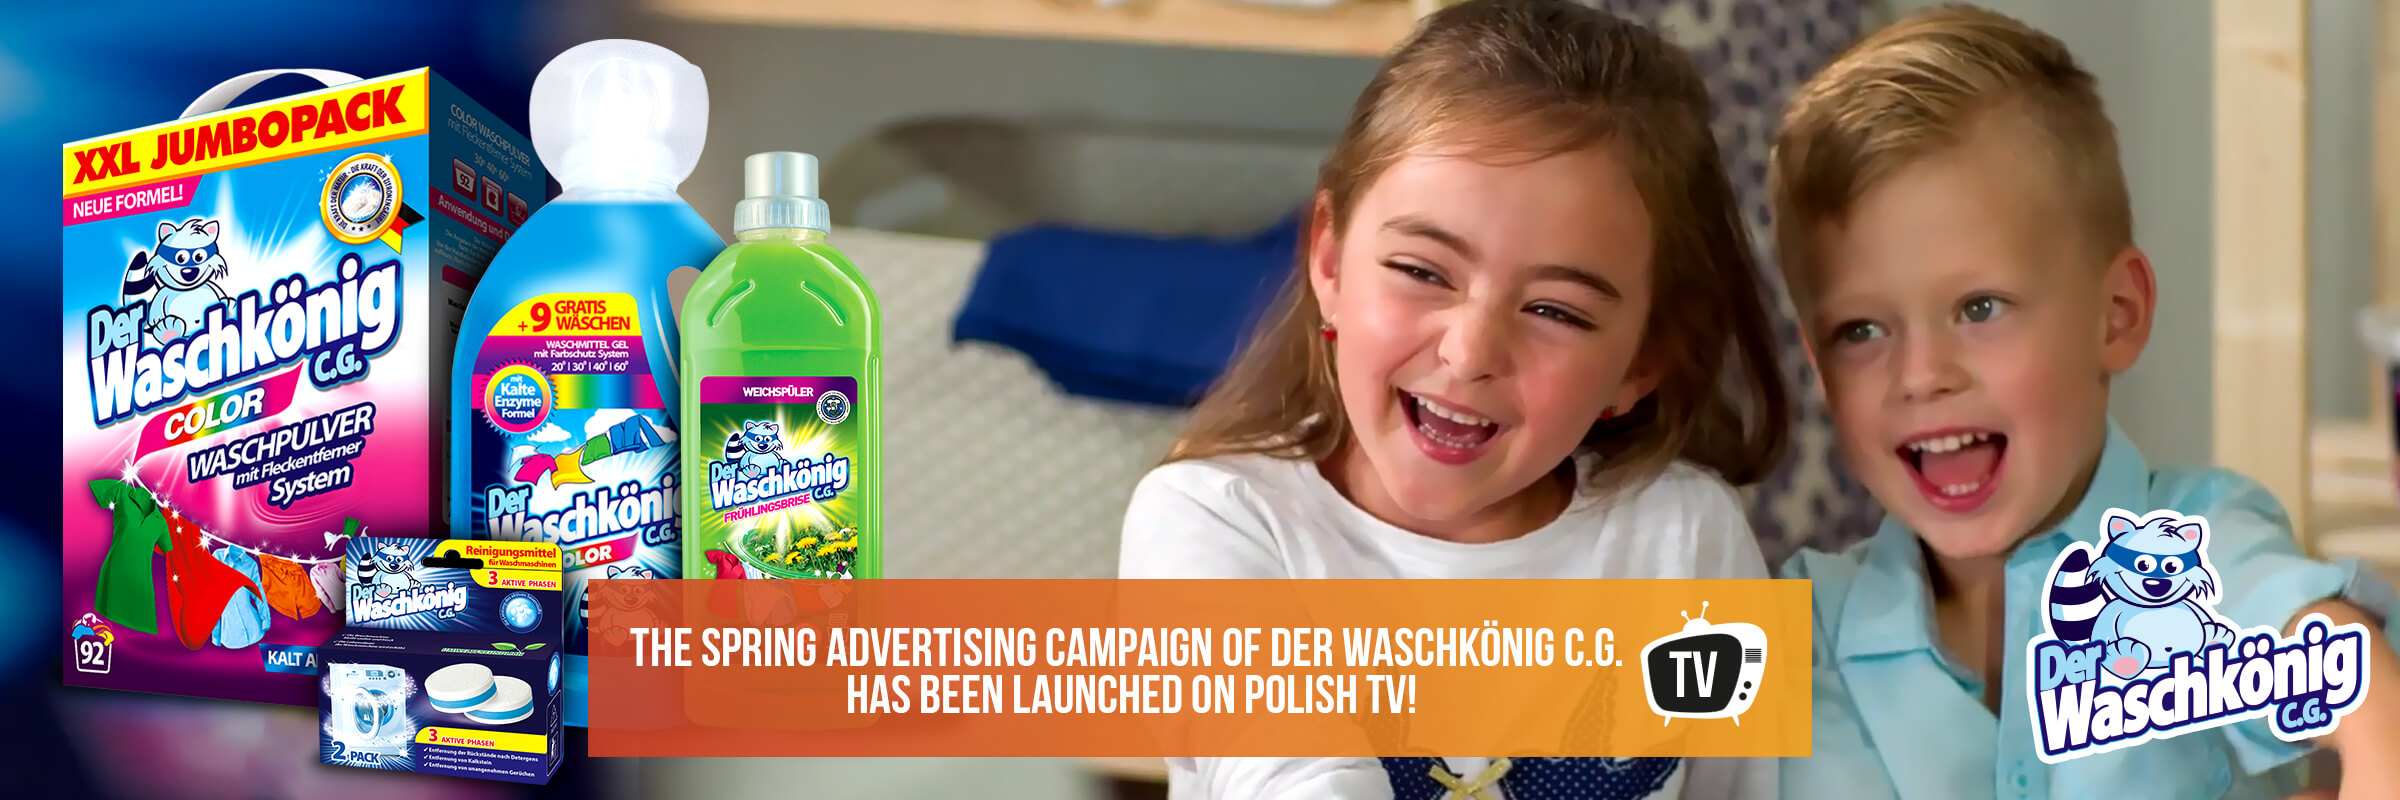 The spring advertising campaign of Der Waschkönig C.G. has been launched on Polish TV!